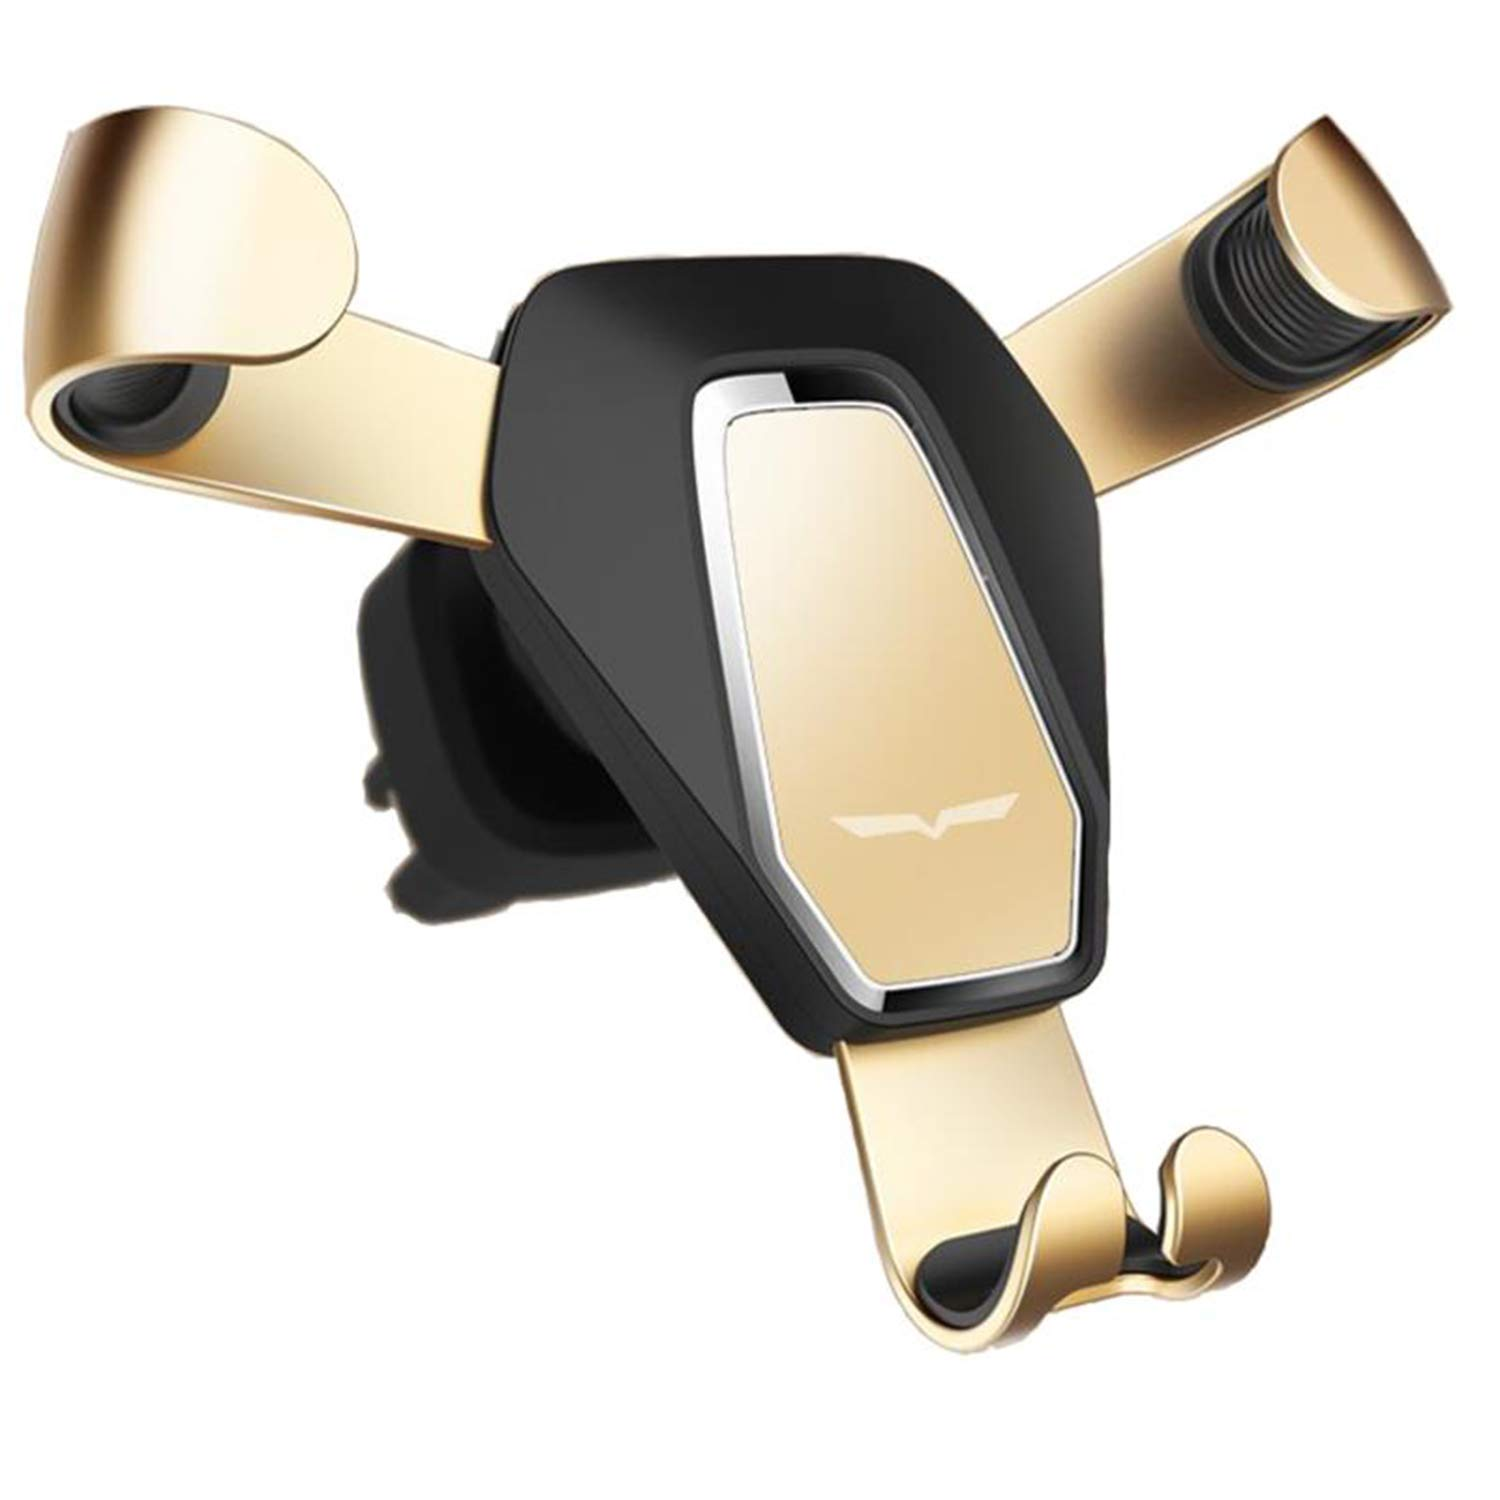 Golden Fit-Fun Air Vent Mount Cell Phone Holder with 360 Degree Spring Clip Car Cradle Mount Mobile Phone Stand for iPhone X//8//8Plus//7//7Plus//6s//6Plus//5S Smartphone Newest Car Phone Gravity Holder